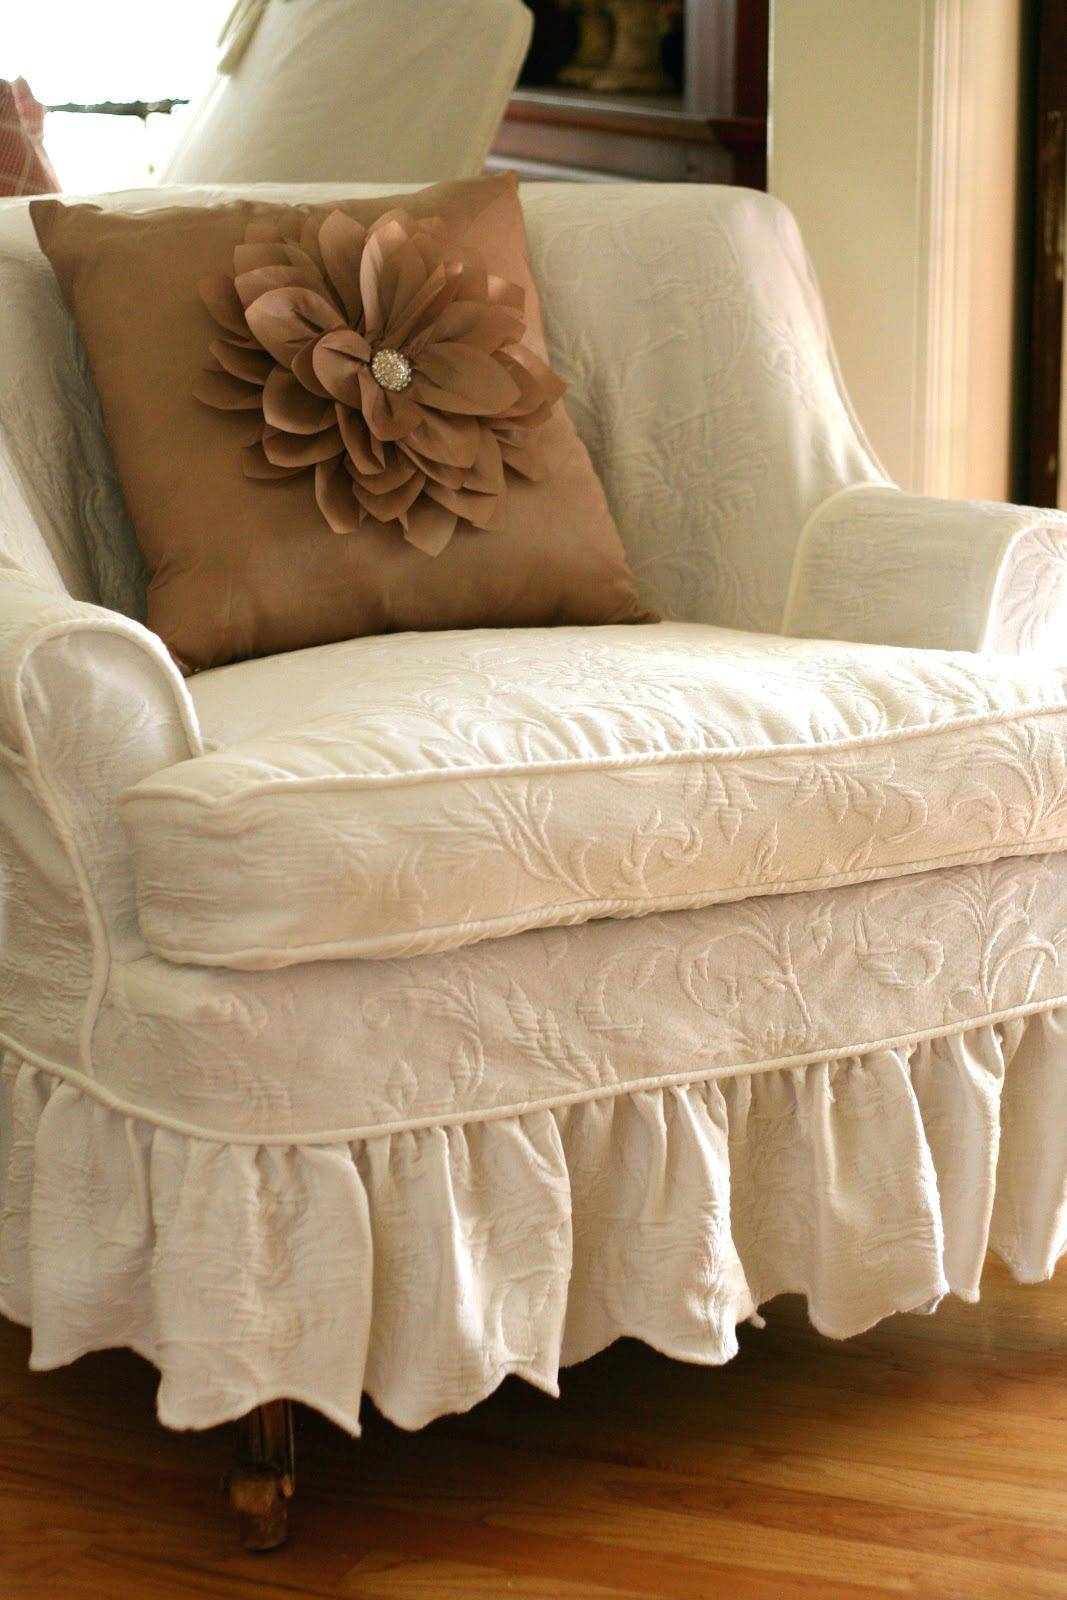 Shabby Chic Slipcovers For Wing Chairs Sale Target #2030 Gallery for Shabby Chic Sofa Slipcovers (Image 8 of 15)